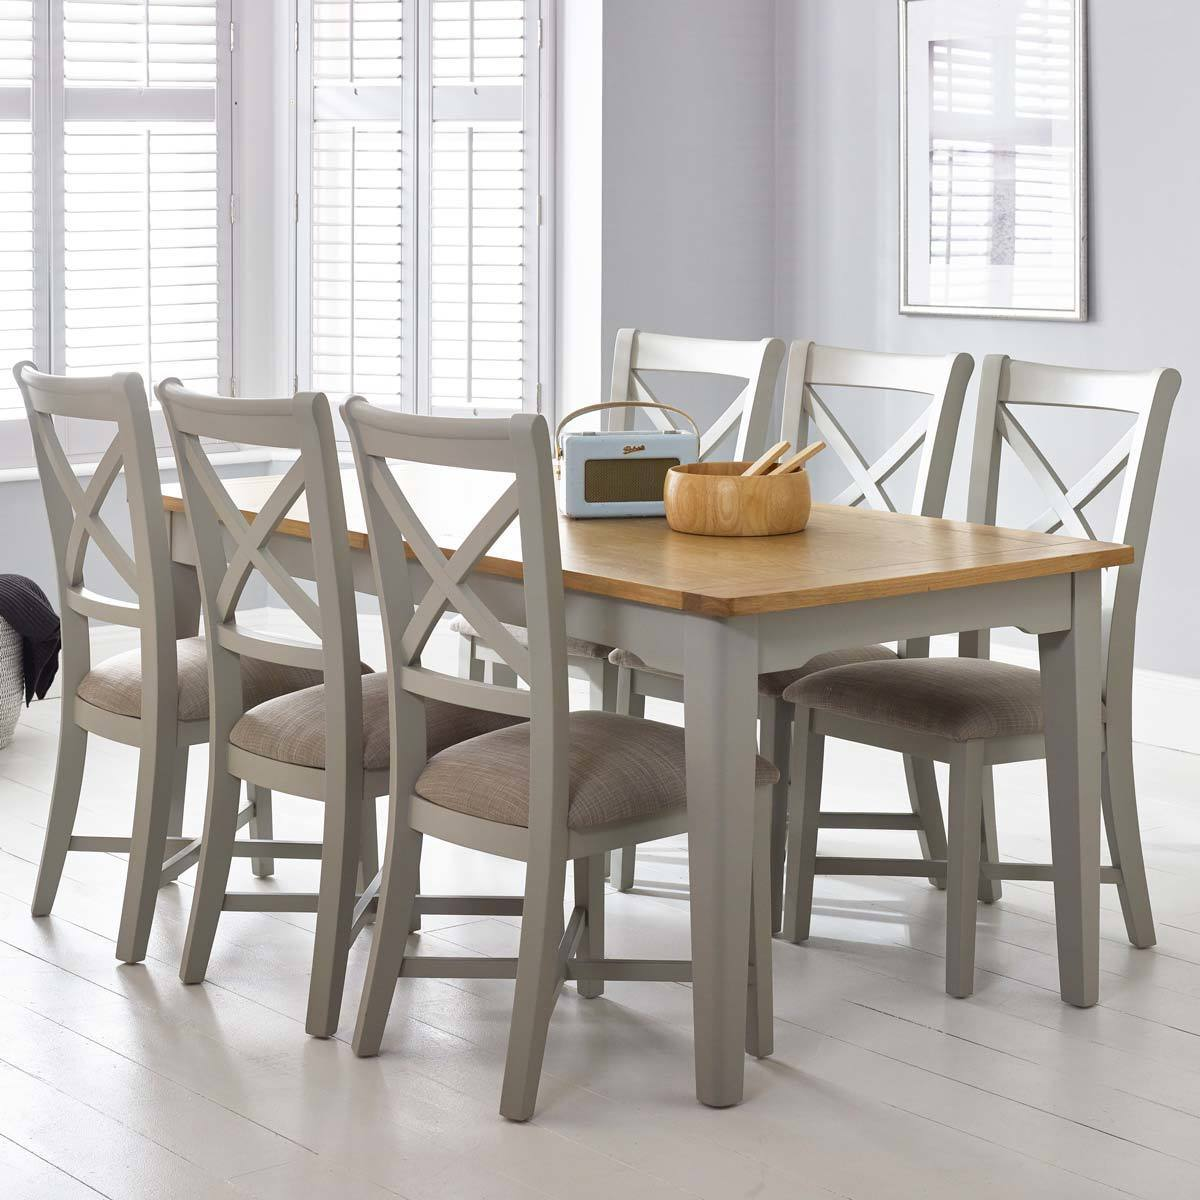 Cucina Letters Kitchen Decor, Bordeaux Painted Light Grey Large Extending Dining Table 6 Chairs Seats 6 8 Costco Uk